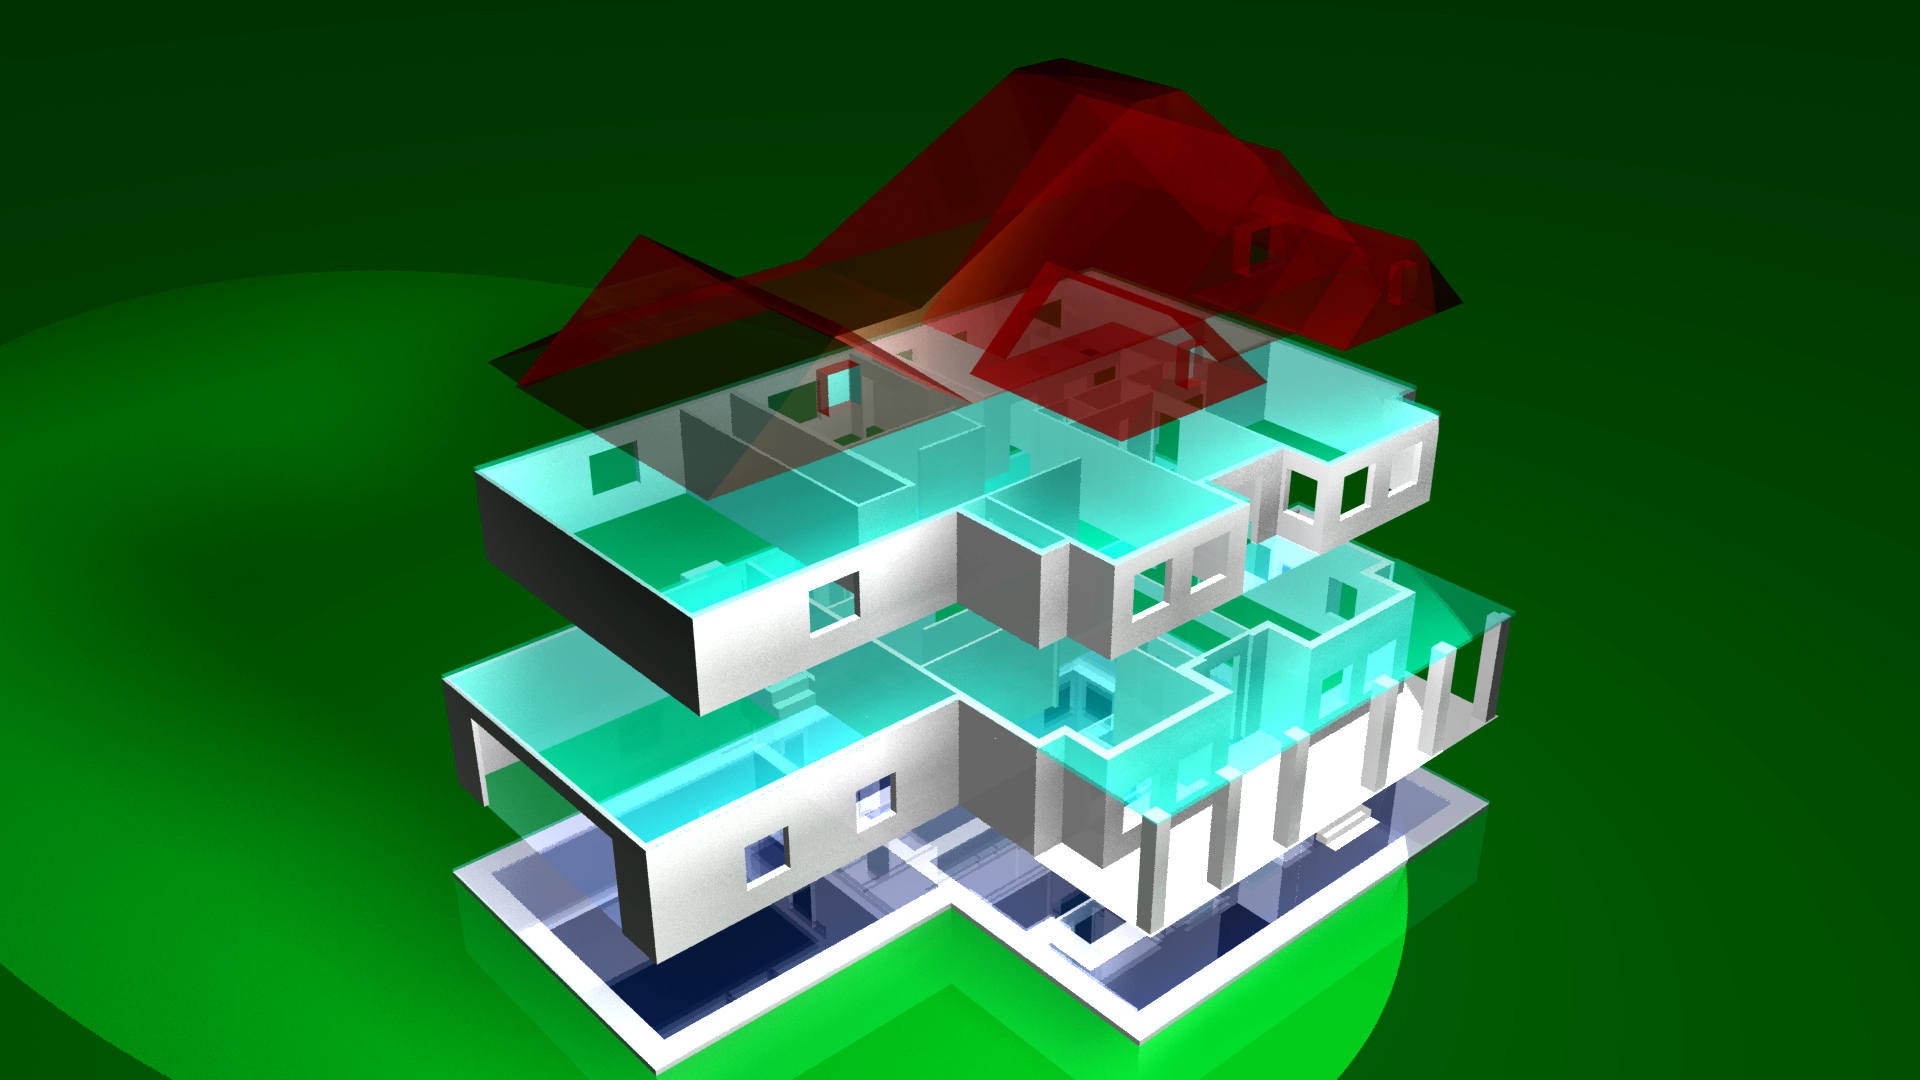 3d Printing Of House Plans From The Plan Collection